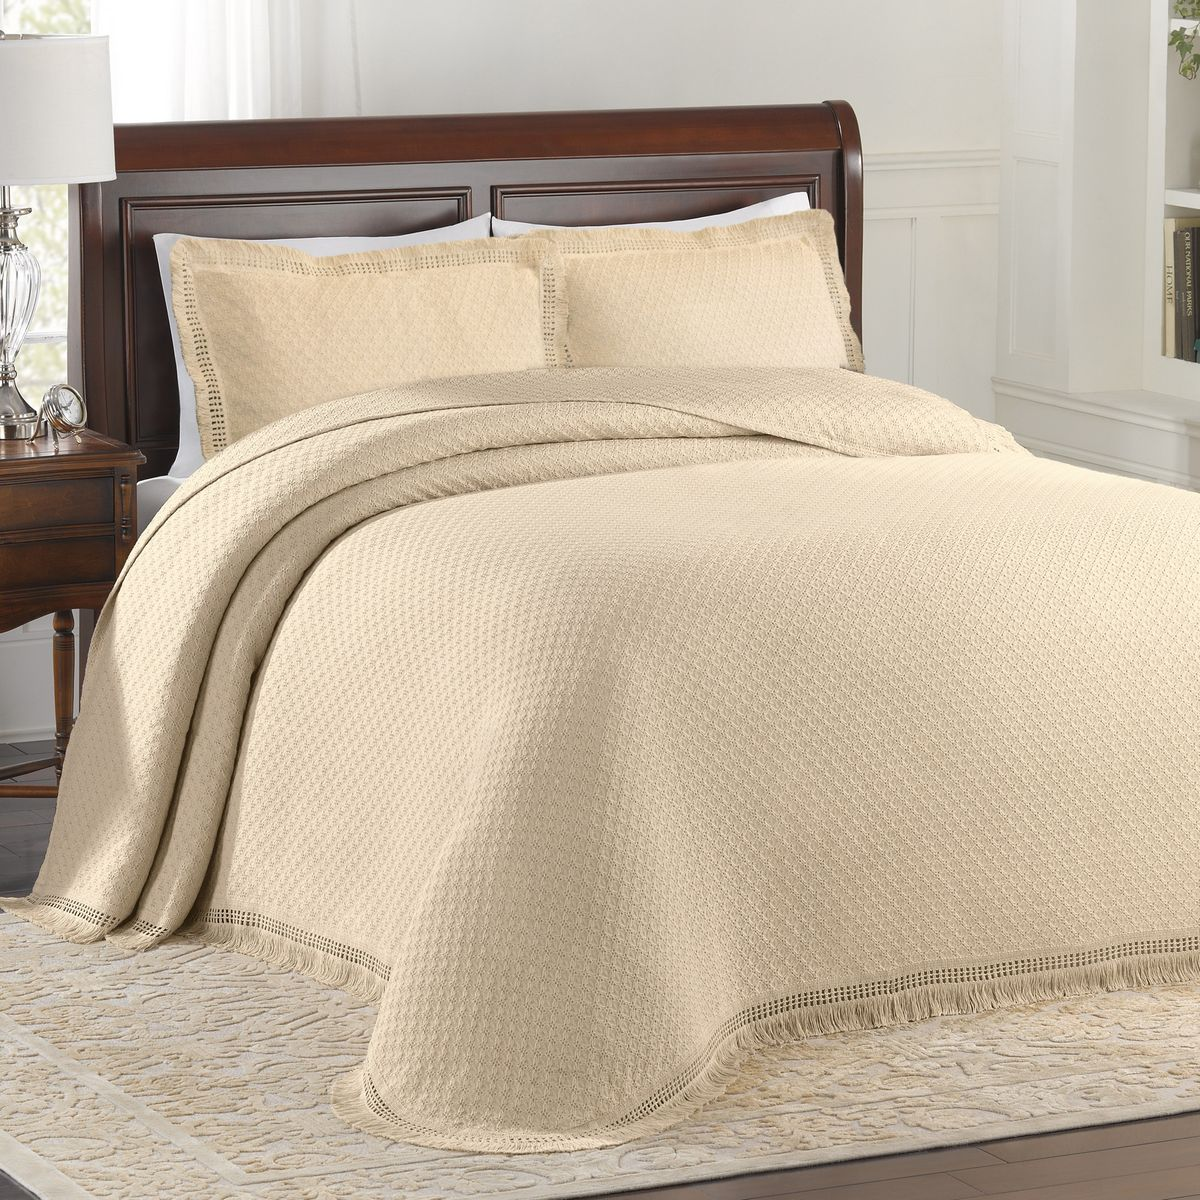 Woven Jacquard Ivory By Lamont Home Beddingsuperstore Com